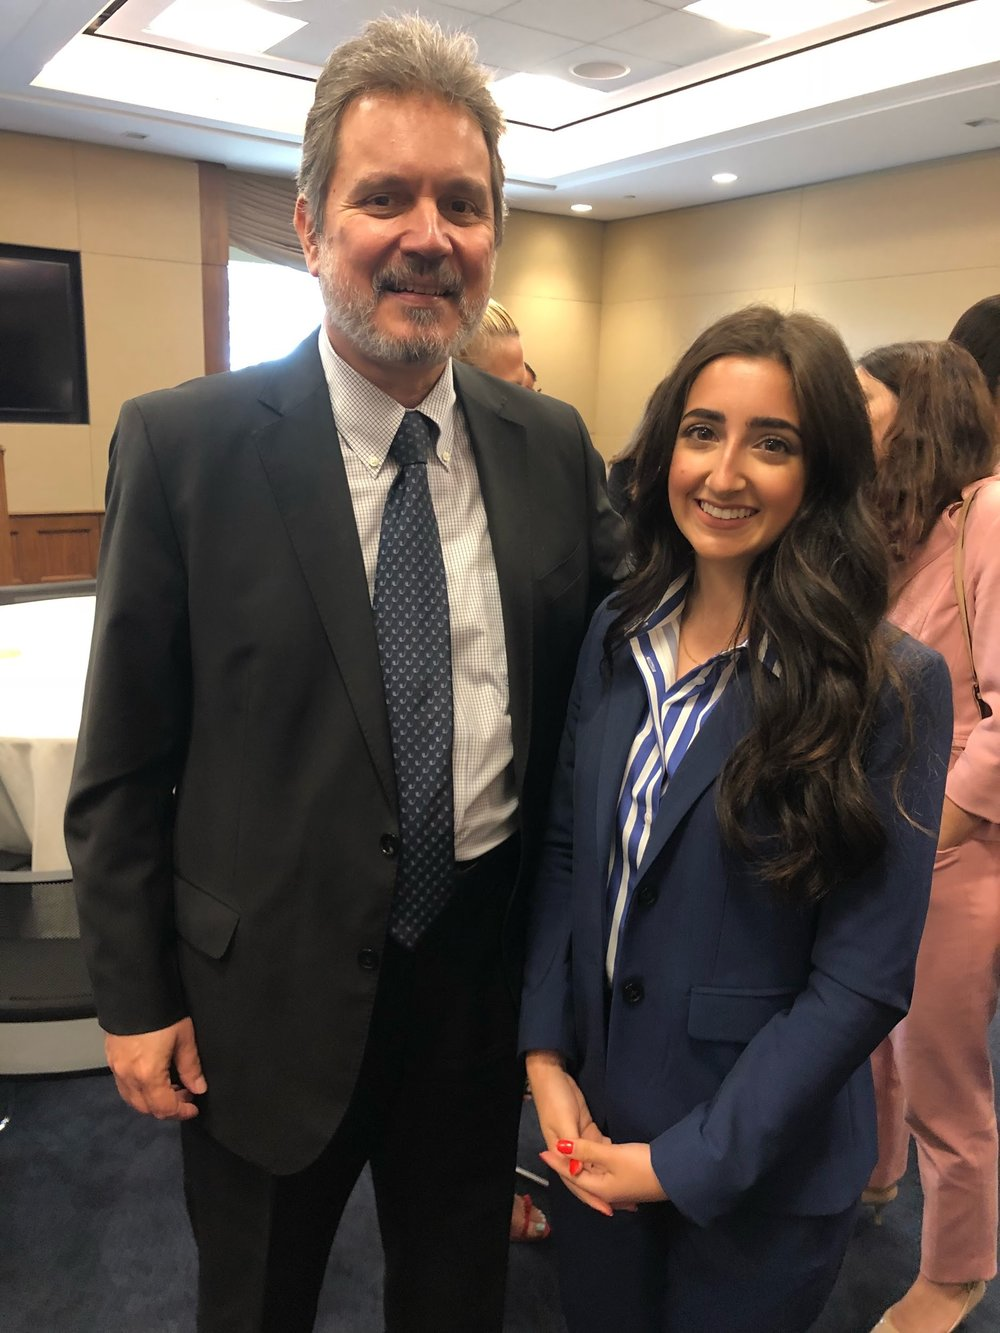 Alexis meeting Ambassador Haris Lalacos at AHI's 44th Anniversary of the Illegal Turkish Invasion of Cyprus event on Capitol Hill.